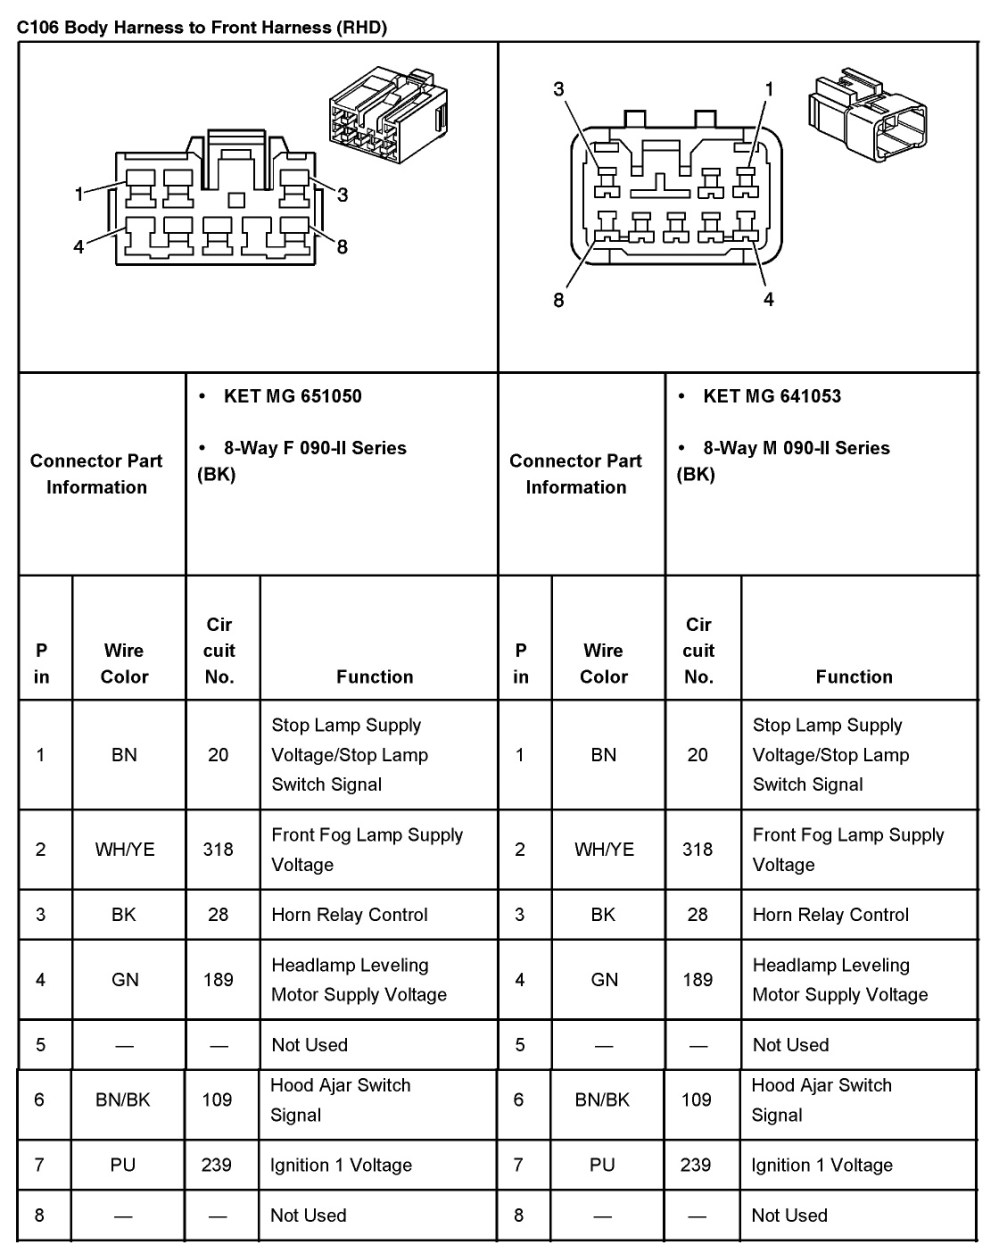 medium resolution of 2005 aveo master connector list and diagrams rh aveoforum com 02 ford explorer fuse diagram ford